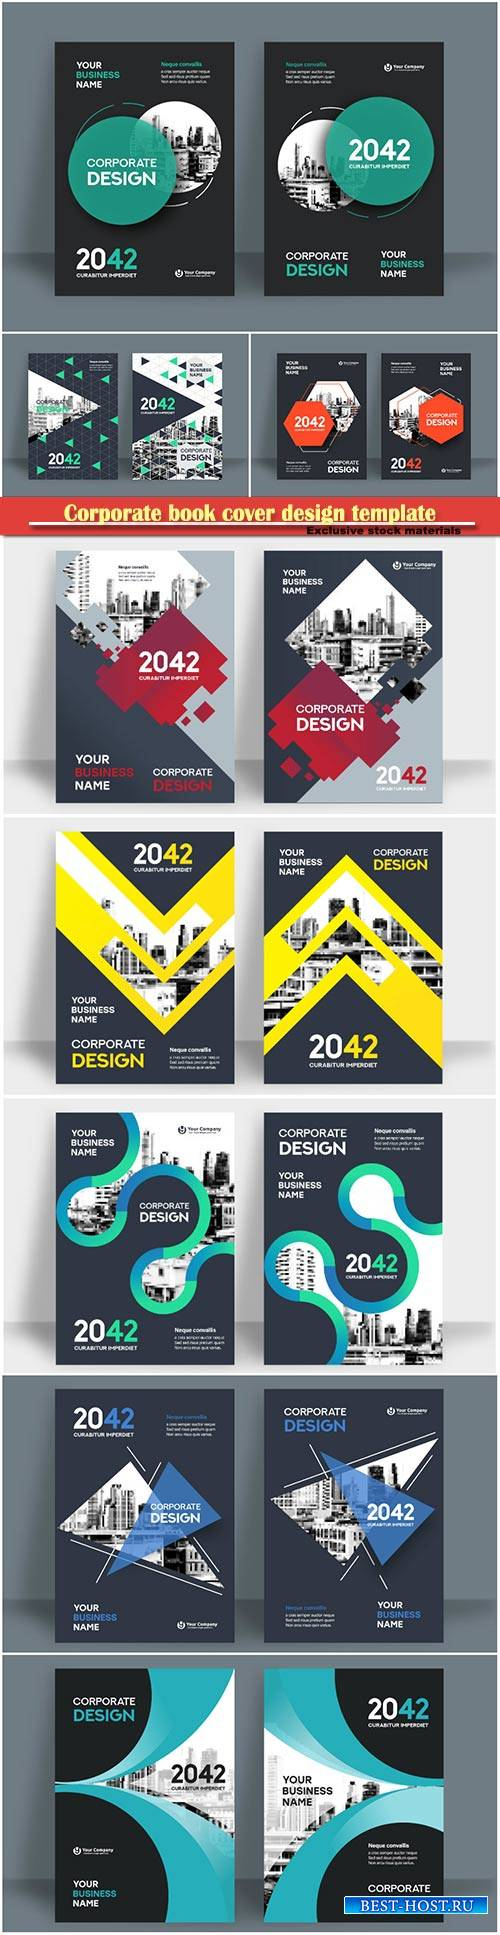 Corporate book cover design template, business vector flyer